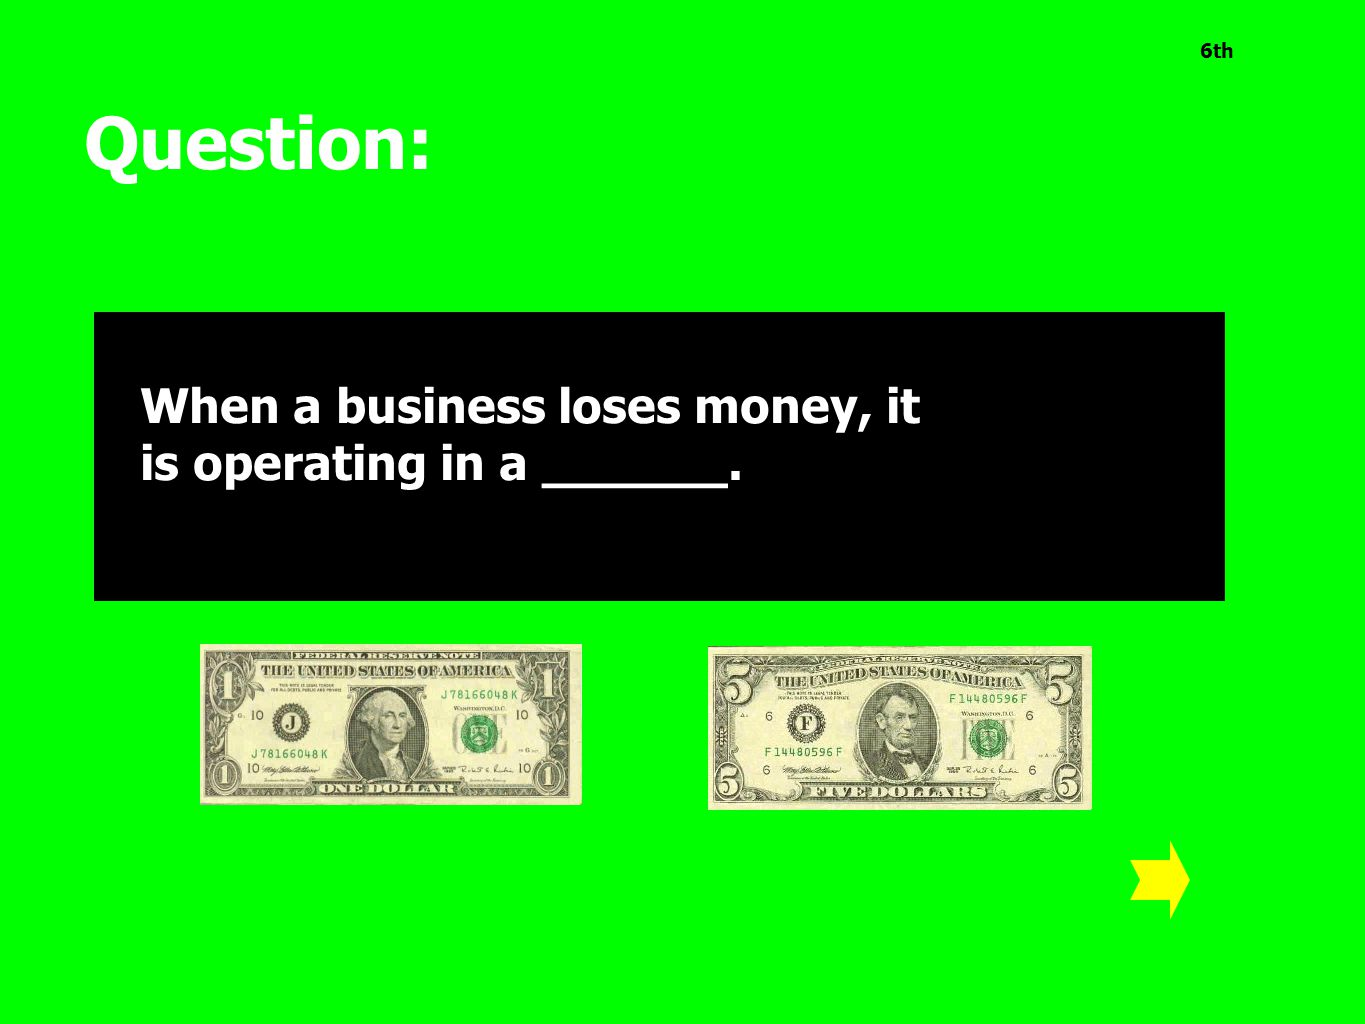 6th Question: When a business loses money, it is operating in a ______.